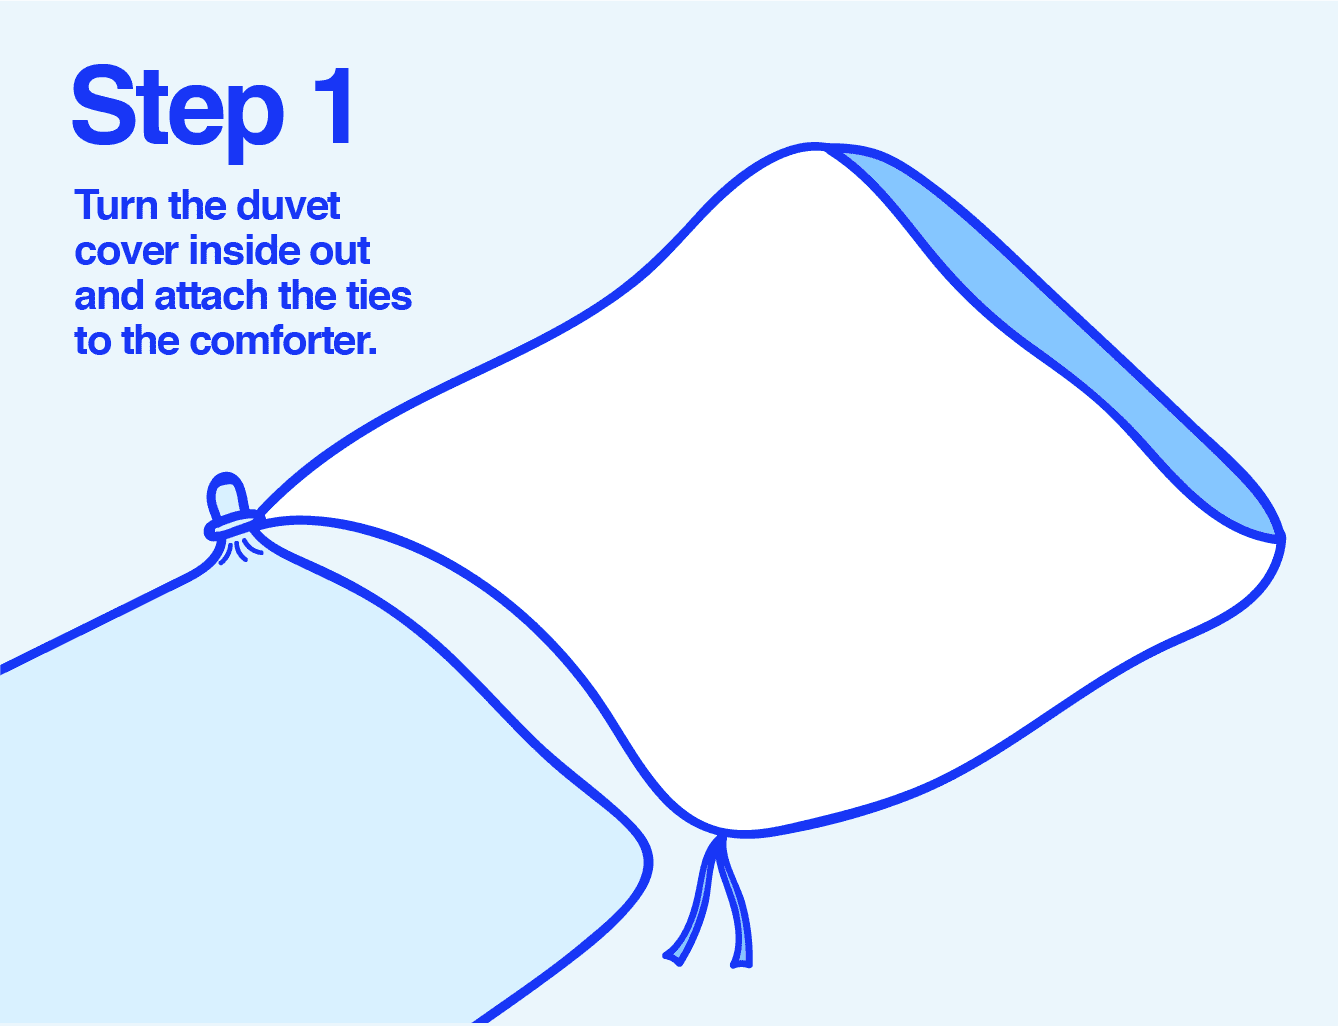 Info graphic of a comforter being placed in a duvet cover